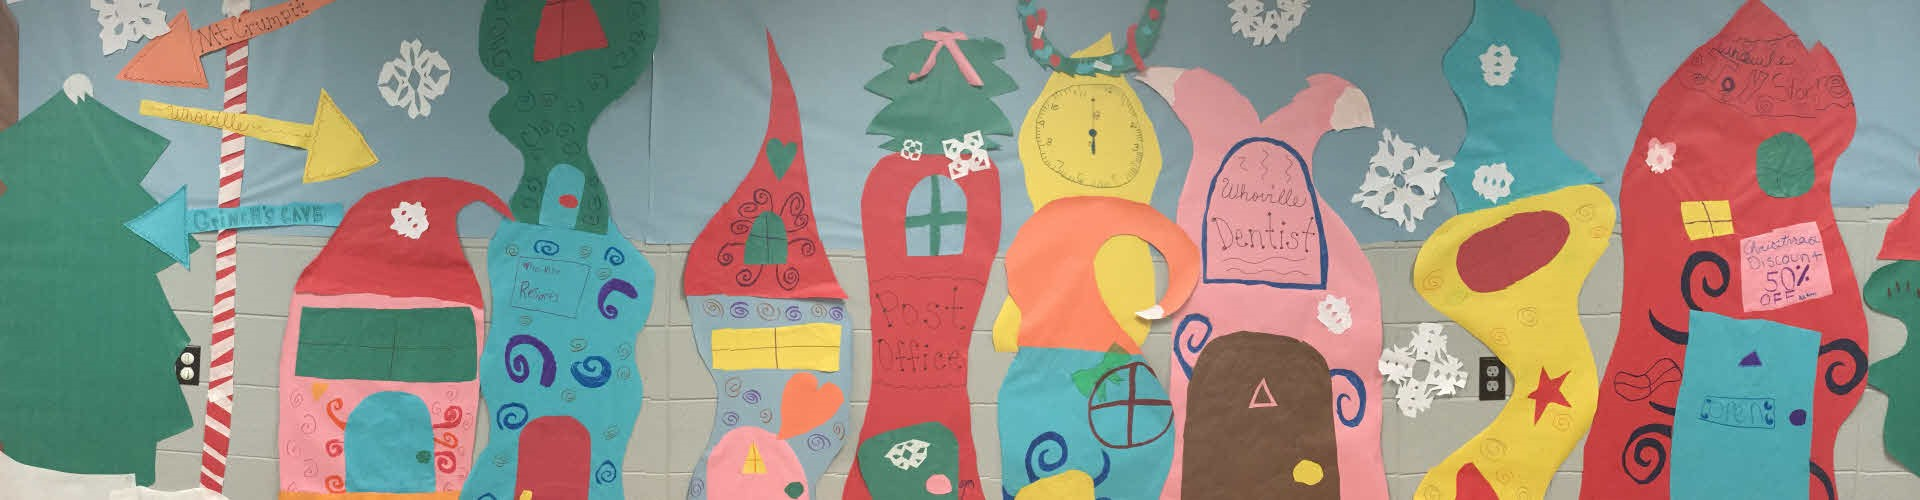 BENTON ELEMENTARY TOMAHAWK THEATER HOLIDAY PLAY BACKDROP